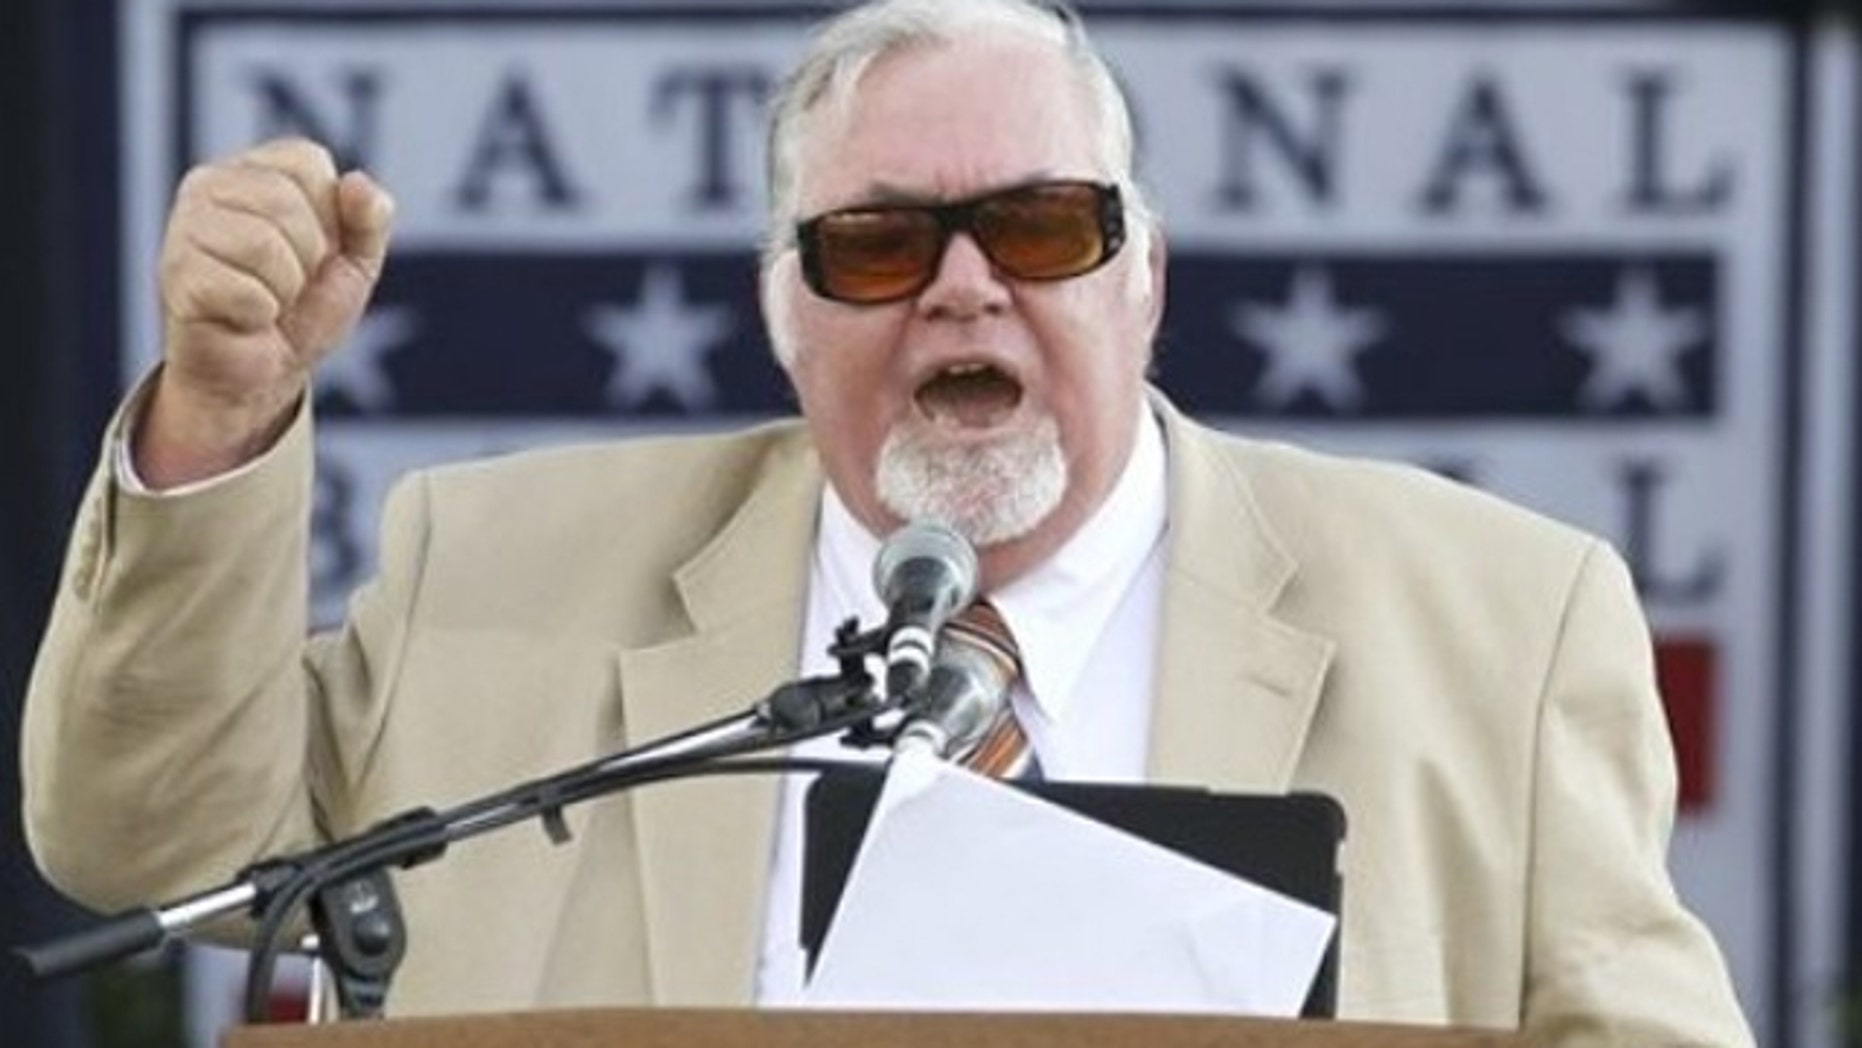 July 23, 2011: Longtime Philadelphia sports writer Bill Conlin speaks after receiving the J.G. Taylor Spink Award during a ceremony at Doubleday Field in Cooperstown, N.Y.